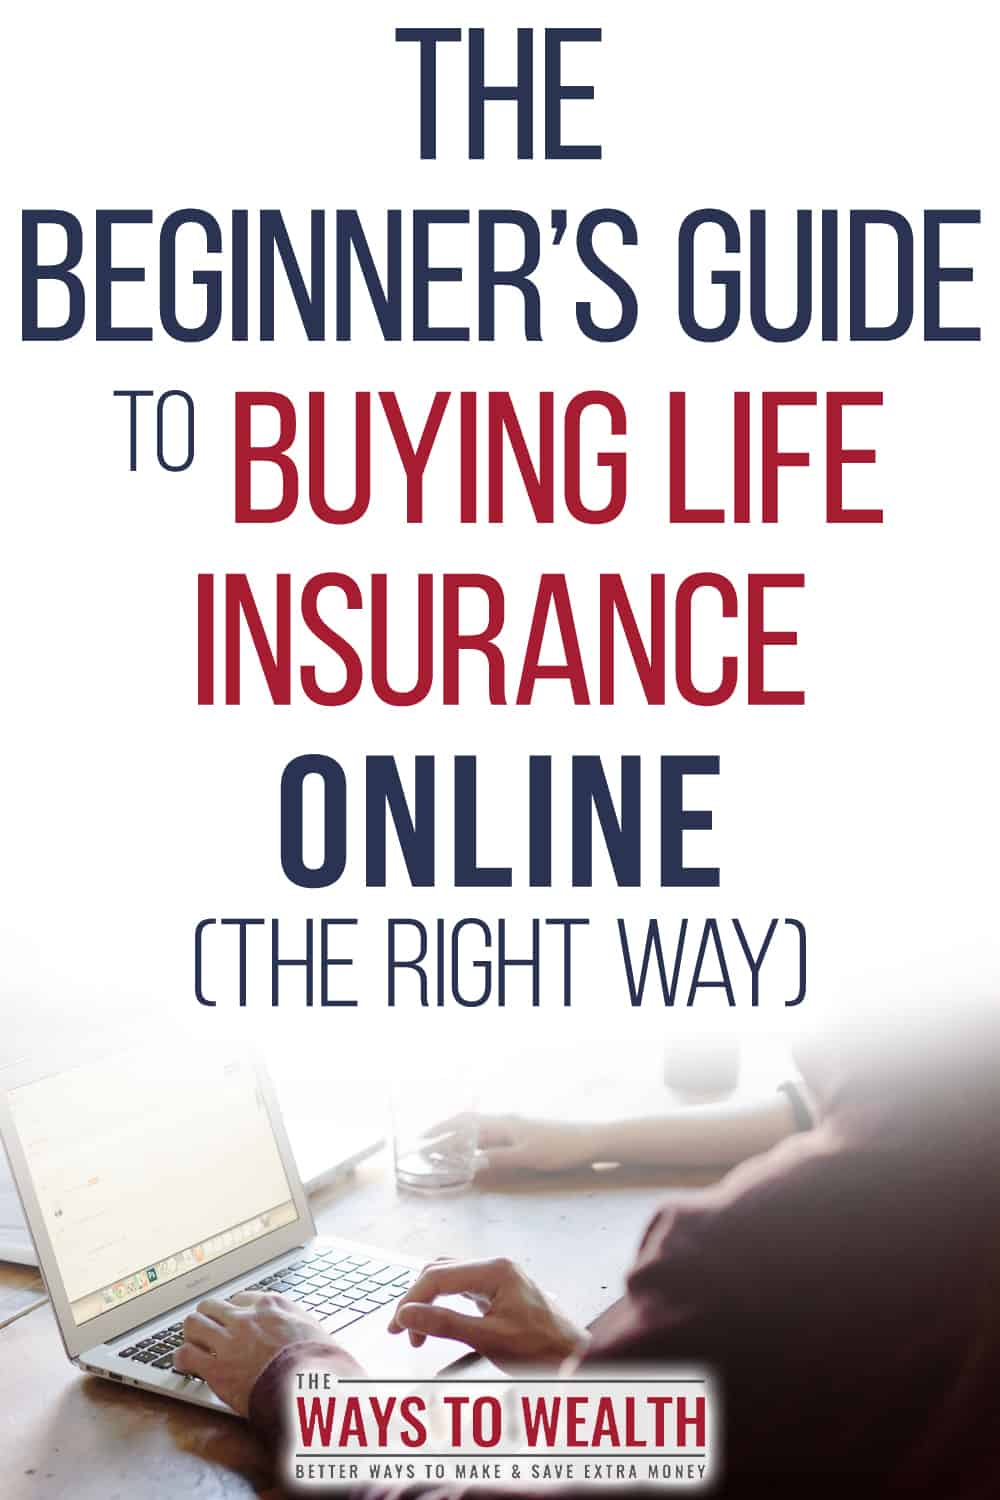 How To Buy Life Insurance Online (Quickly) | The Ways To ...